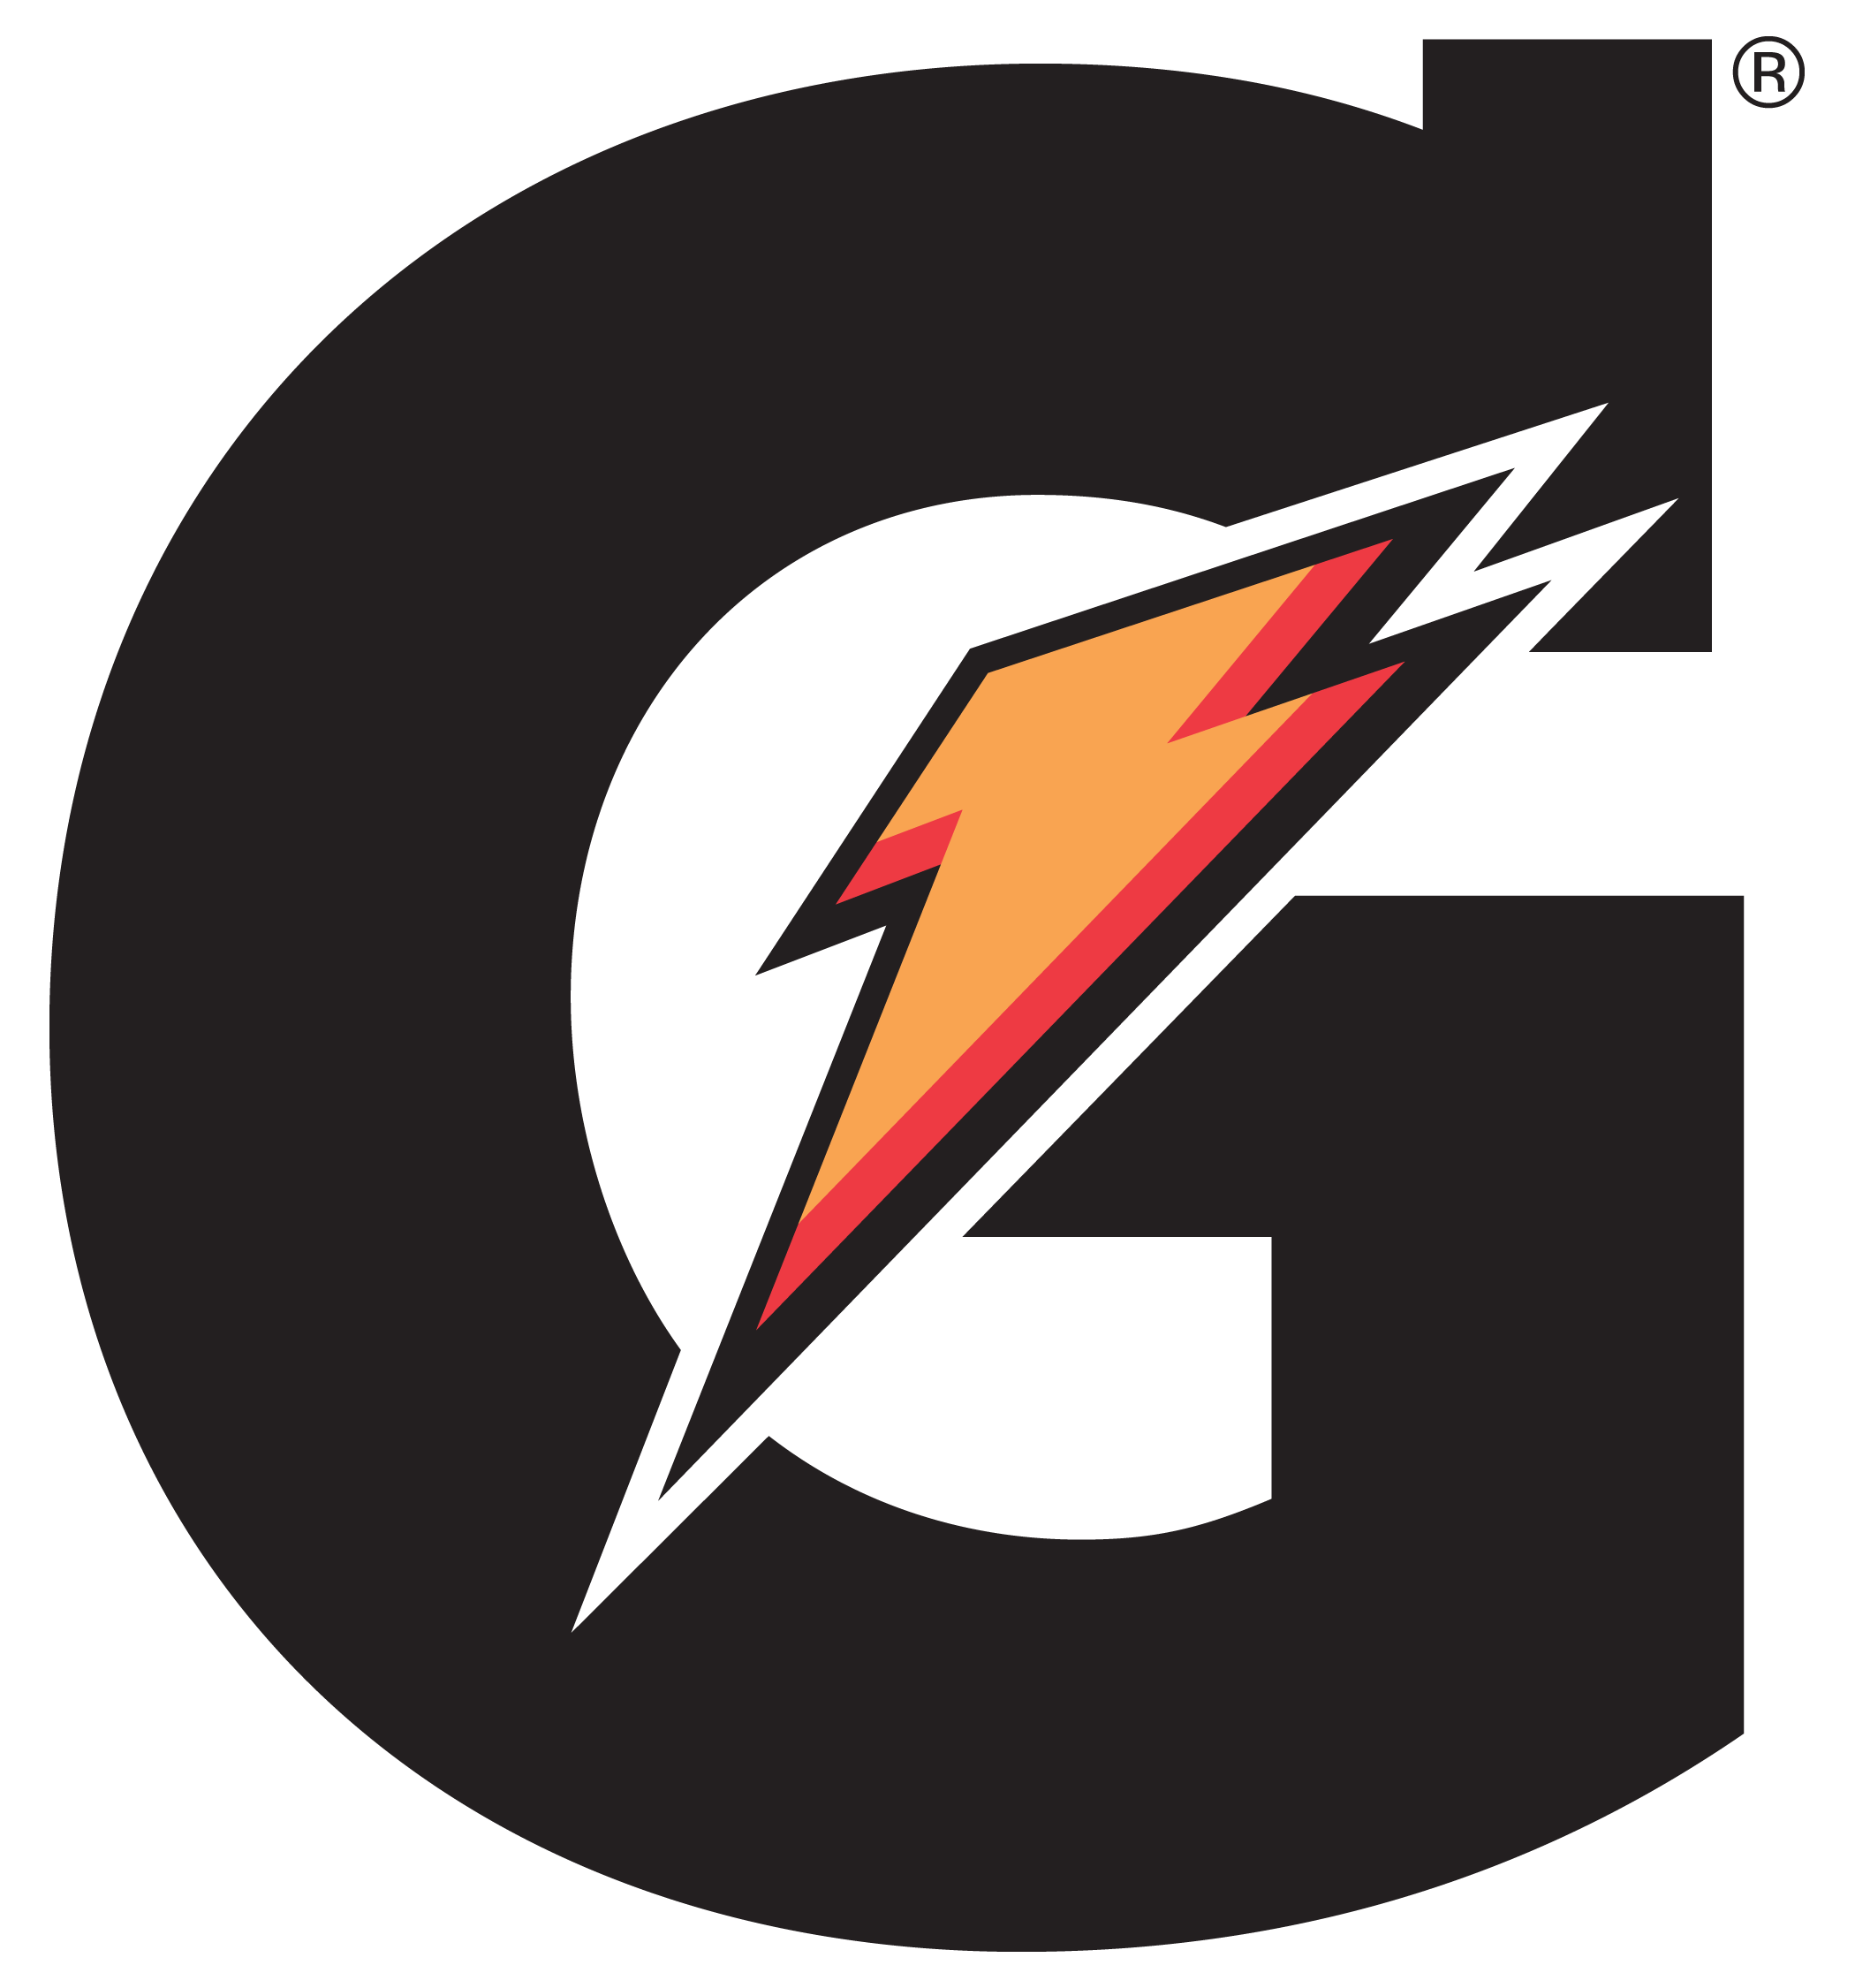 gatorade-transparent-logo-3